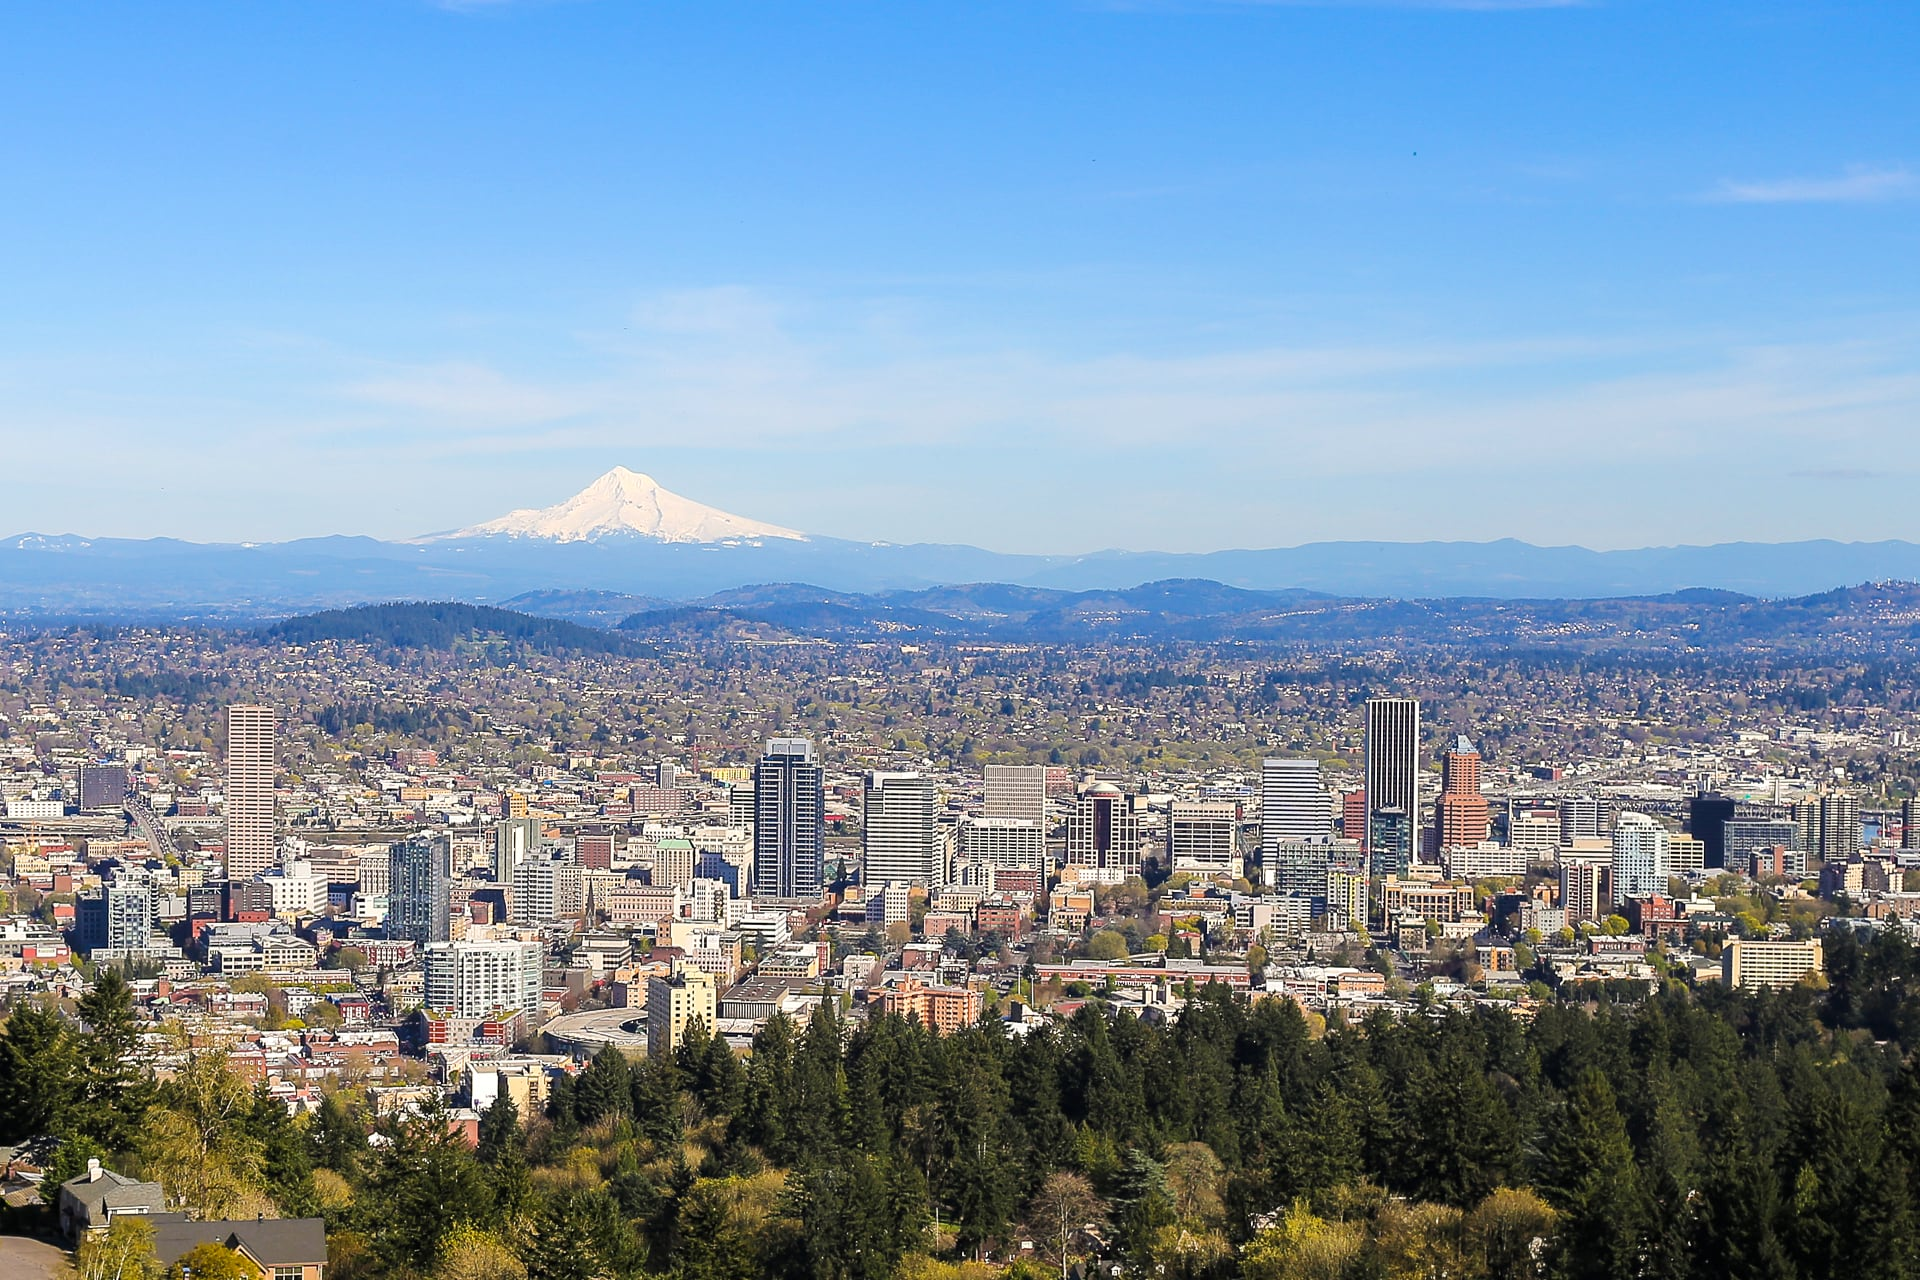 Pittock Mansion hike via Lower Macleay Trail Portland Oregon